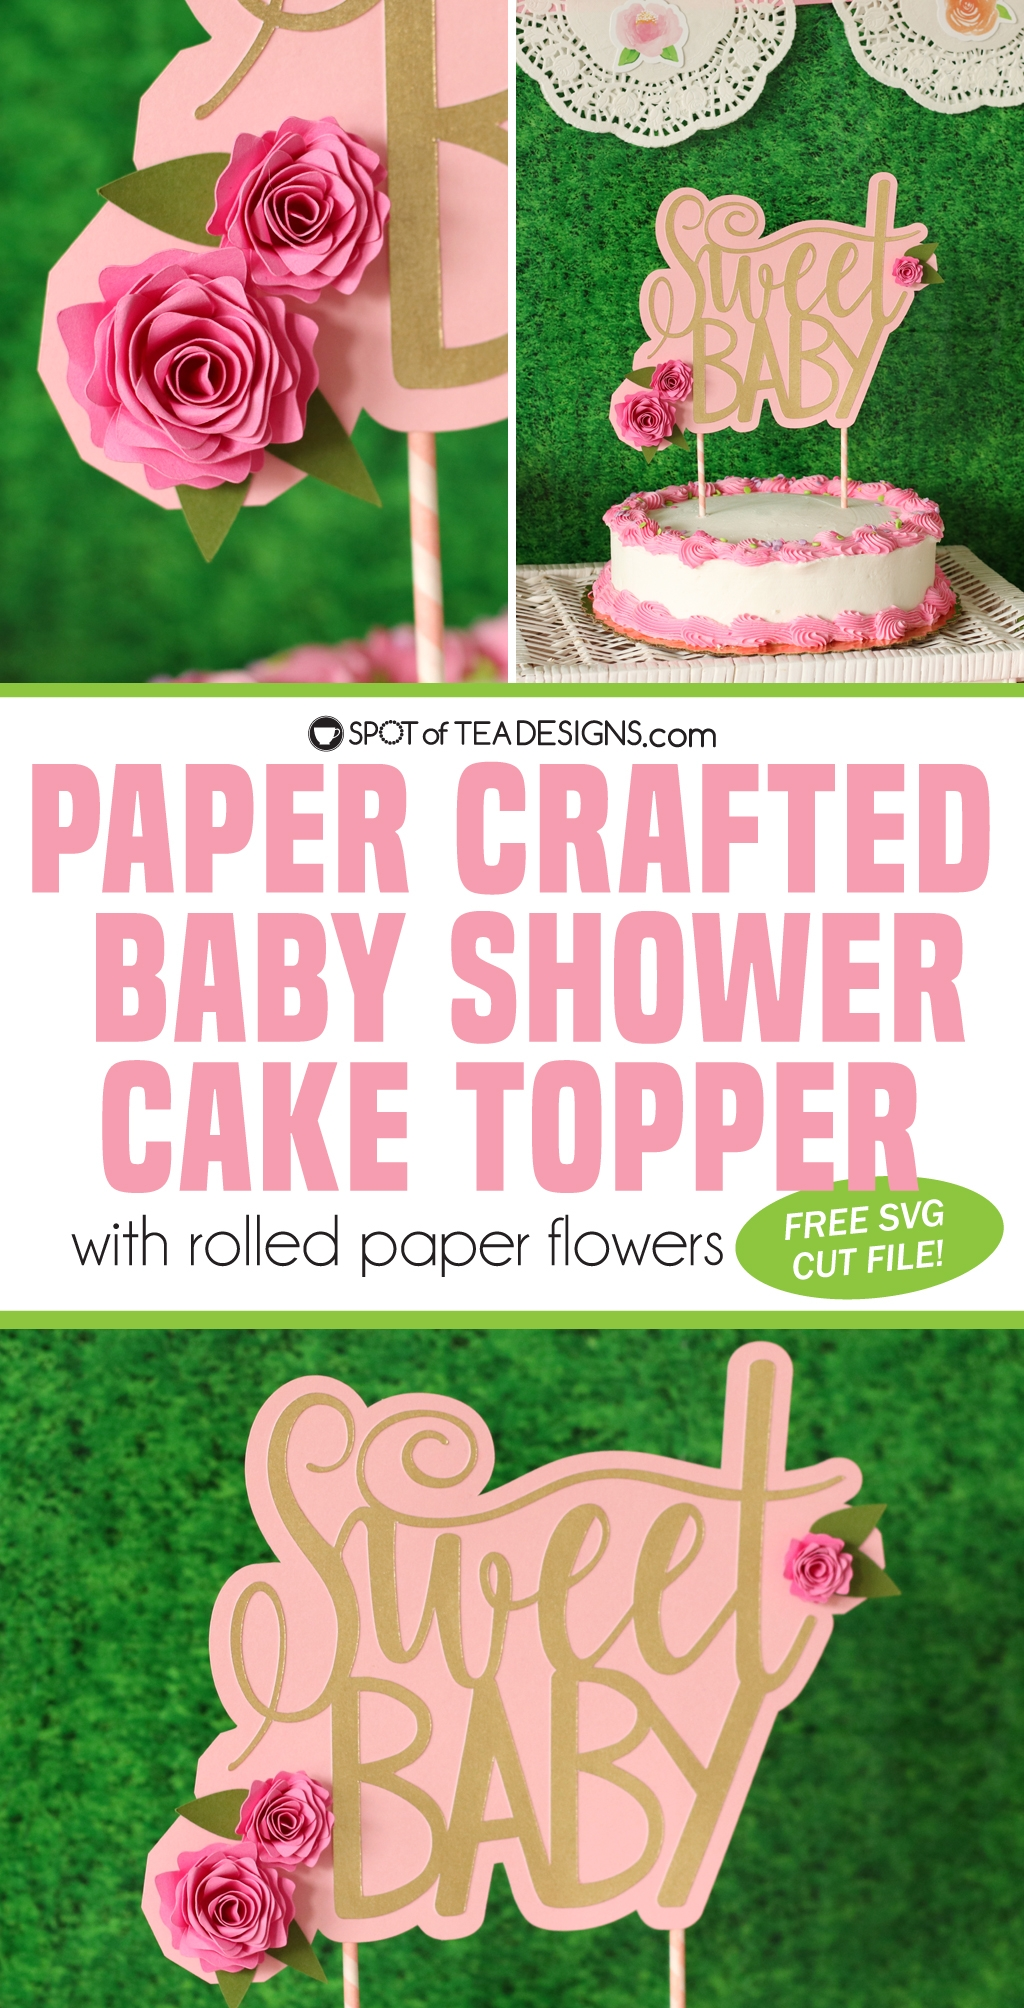 Floral baby shower - DIY cake topper with rolled paper flowers - free svg cut file | spotofteadesigns.com